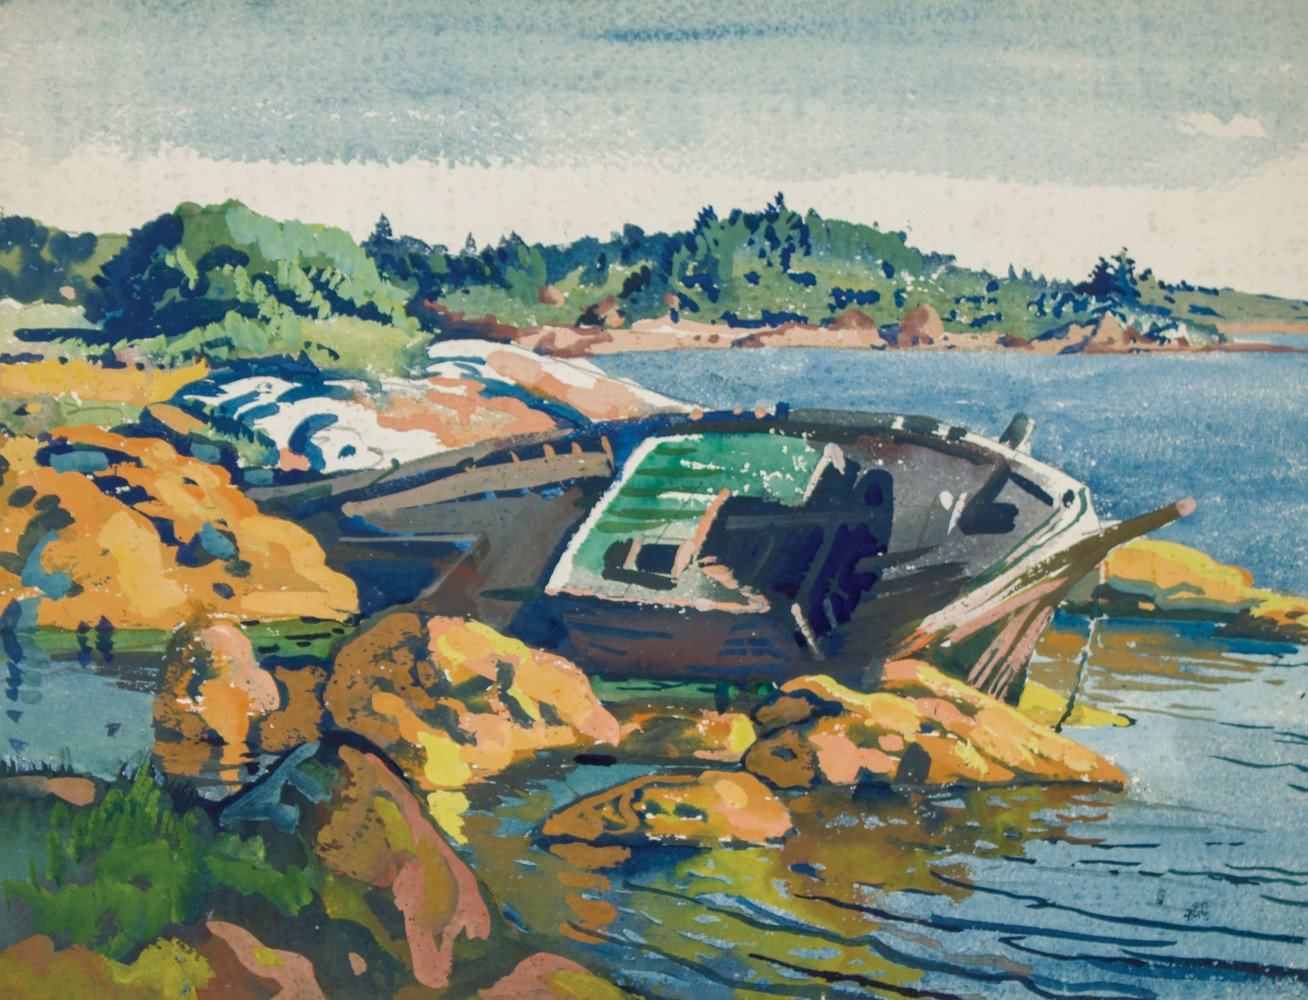 Wreck near Boothbay, Maine by Frank Nelson Wilcox